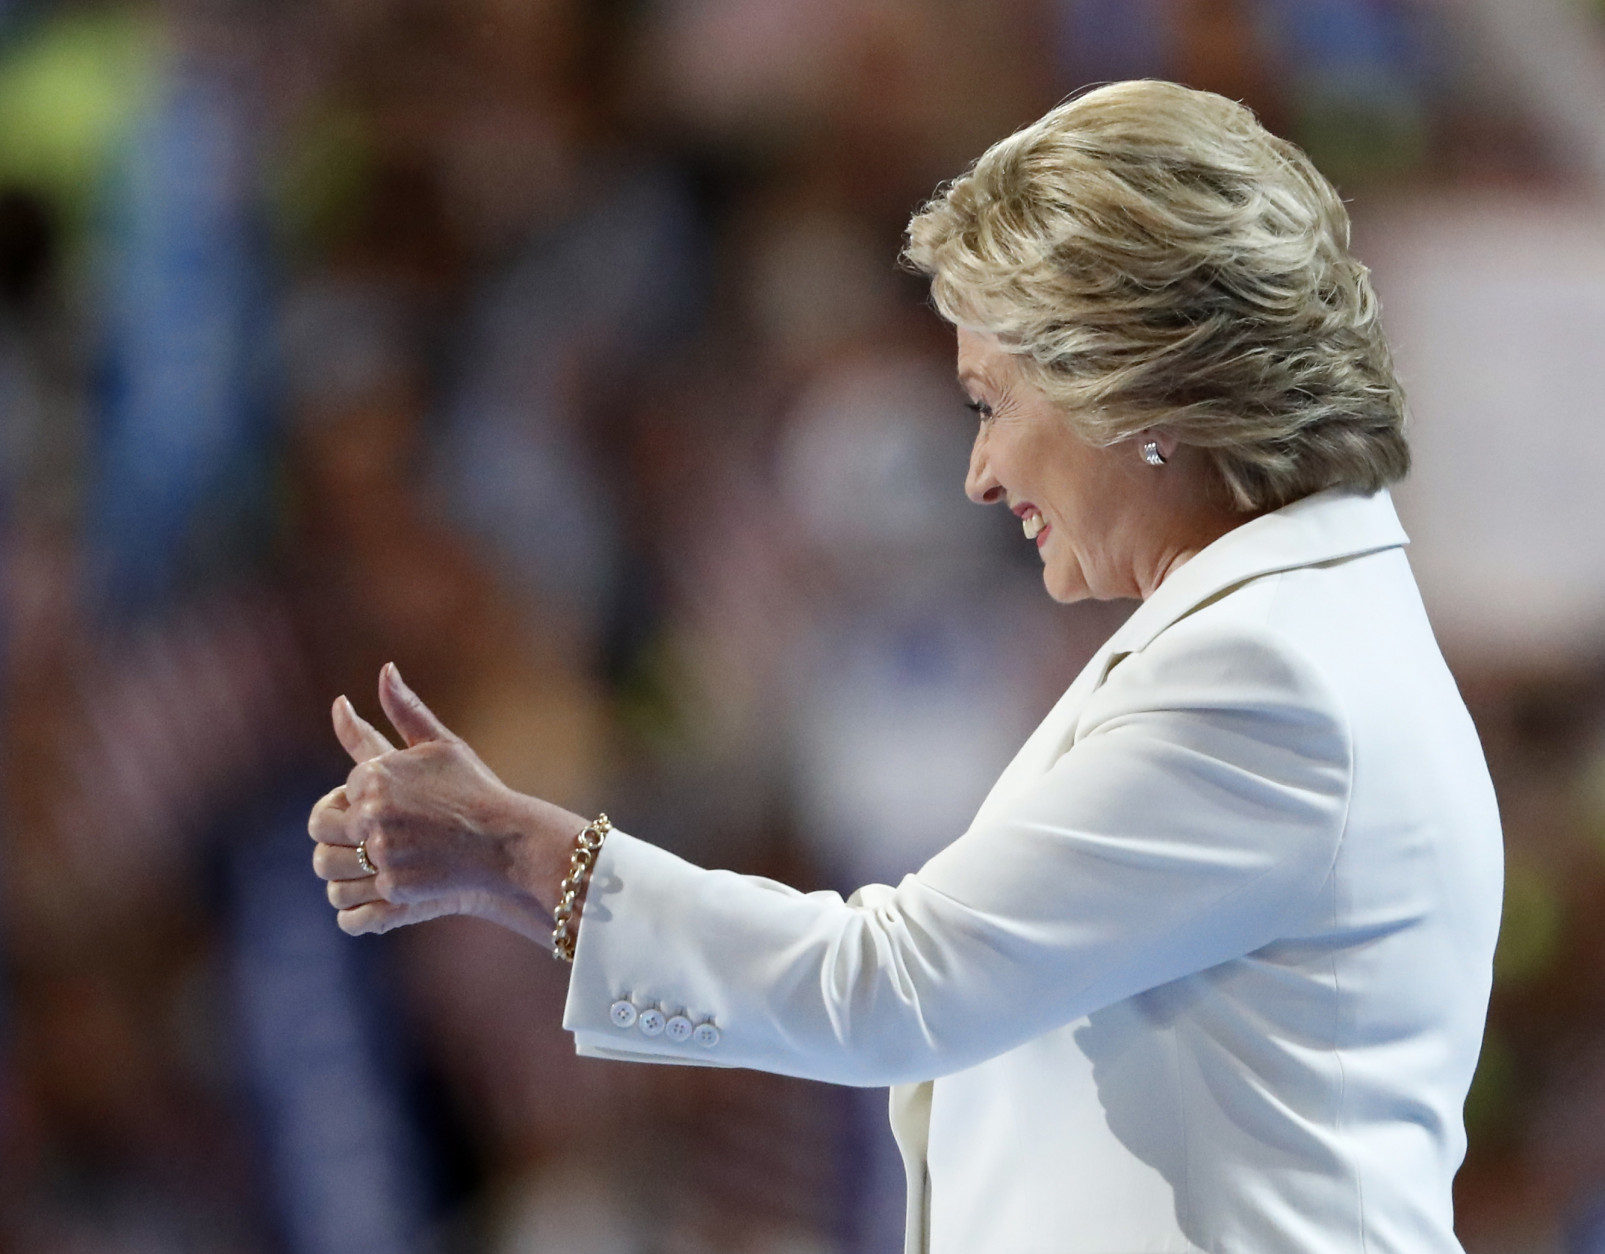 Democratic presidential nominee Hillary Clinton gives a thumbs up on stage during the final day of the Democratic National Convention in Philadelphia , Thursday, July 28, 2016. (AP Photo/Paul Sancya)